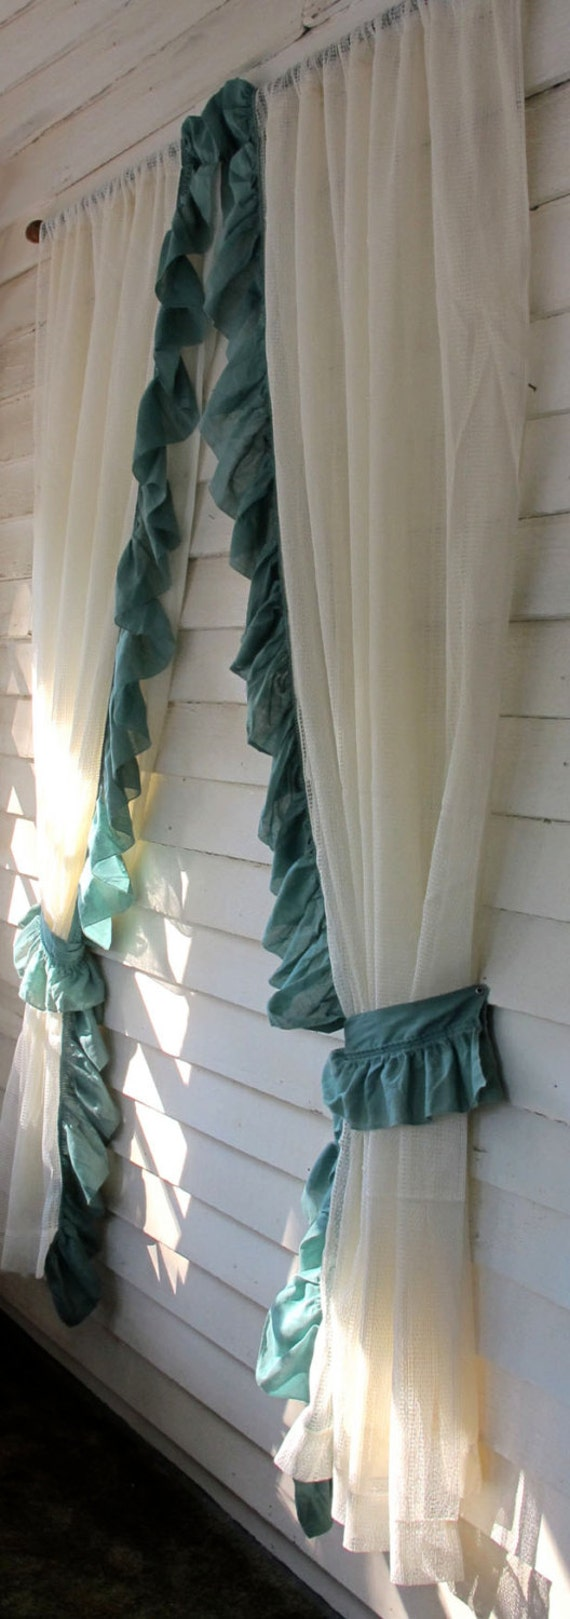 Ruffled Tieback Curtains Priscilla Drapes Lined Window